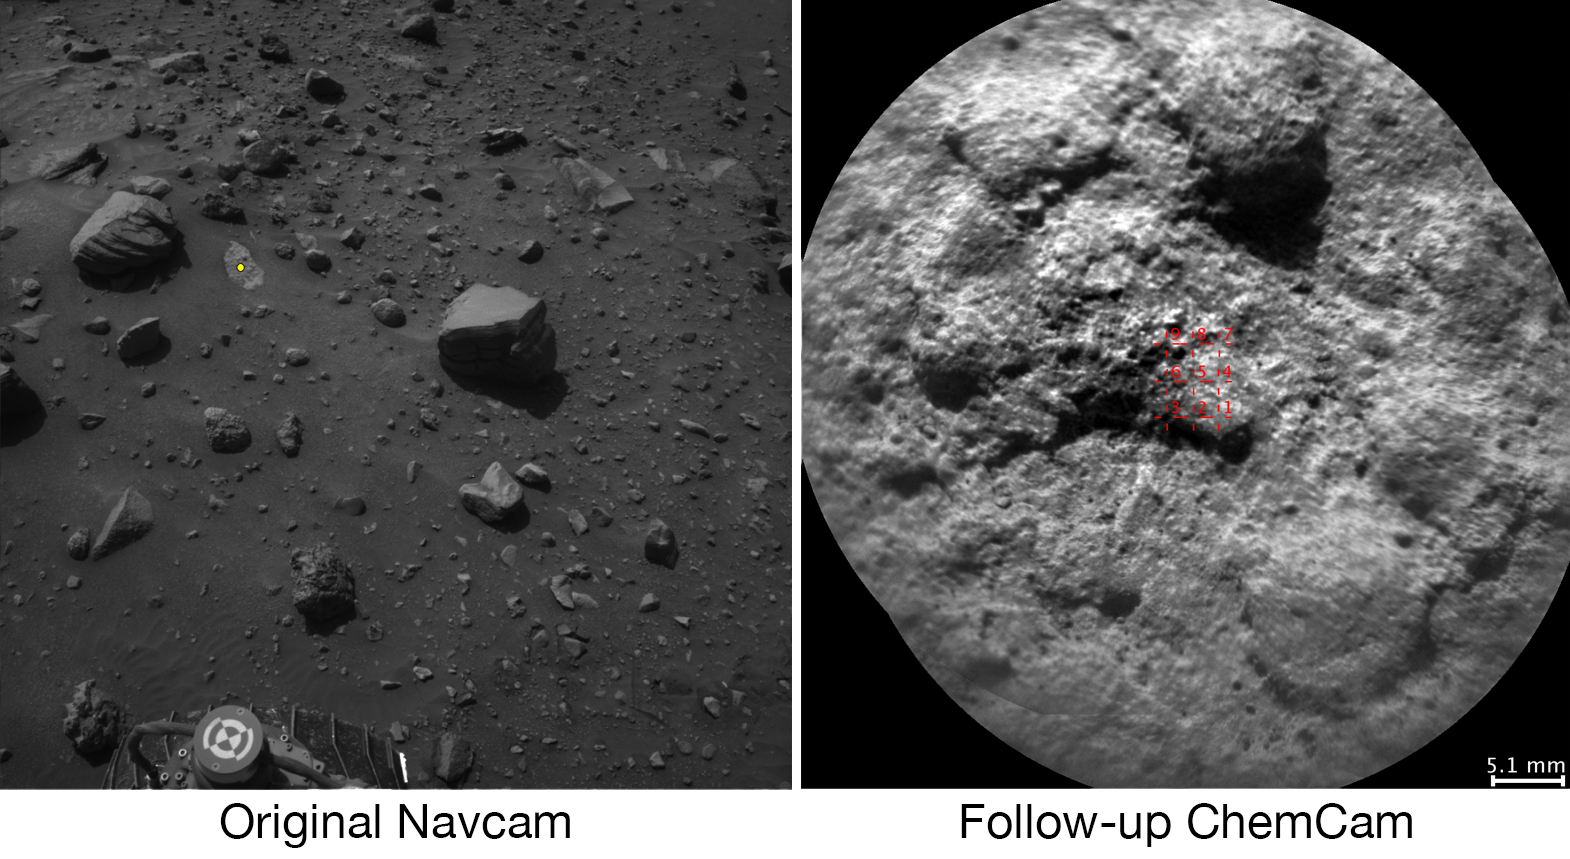 NASA's Curiosity Mars rover autonomously selects some targets for the laser and telescopic camera of its ChemCam instrument. For example, on-board software analyzed the Navcam image at left, chose the target indicated with a yellow dot, and pointed ChemCam for laser shots and the image at right.